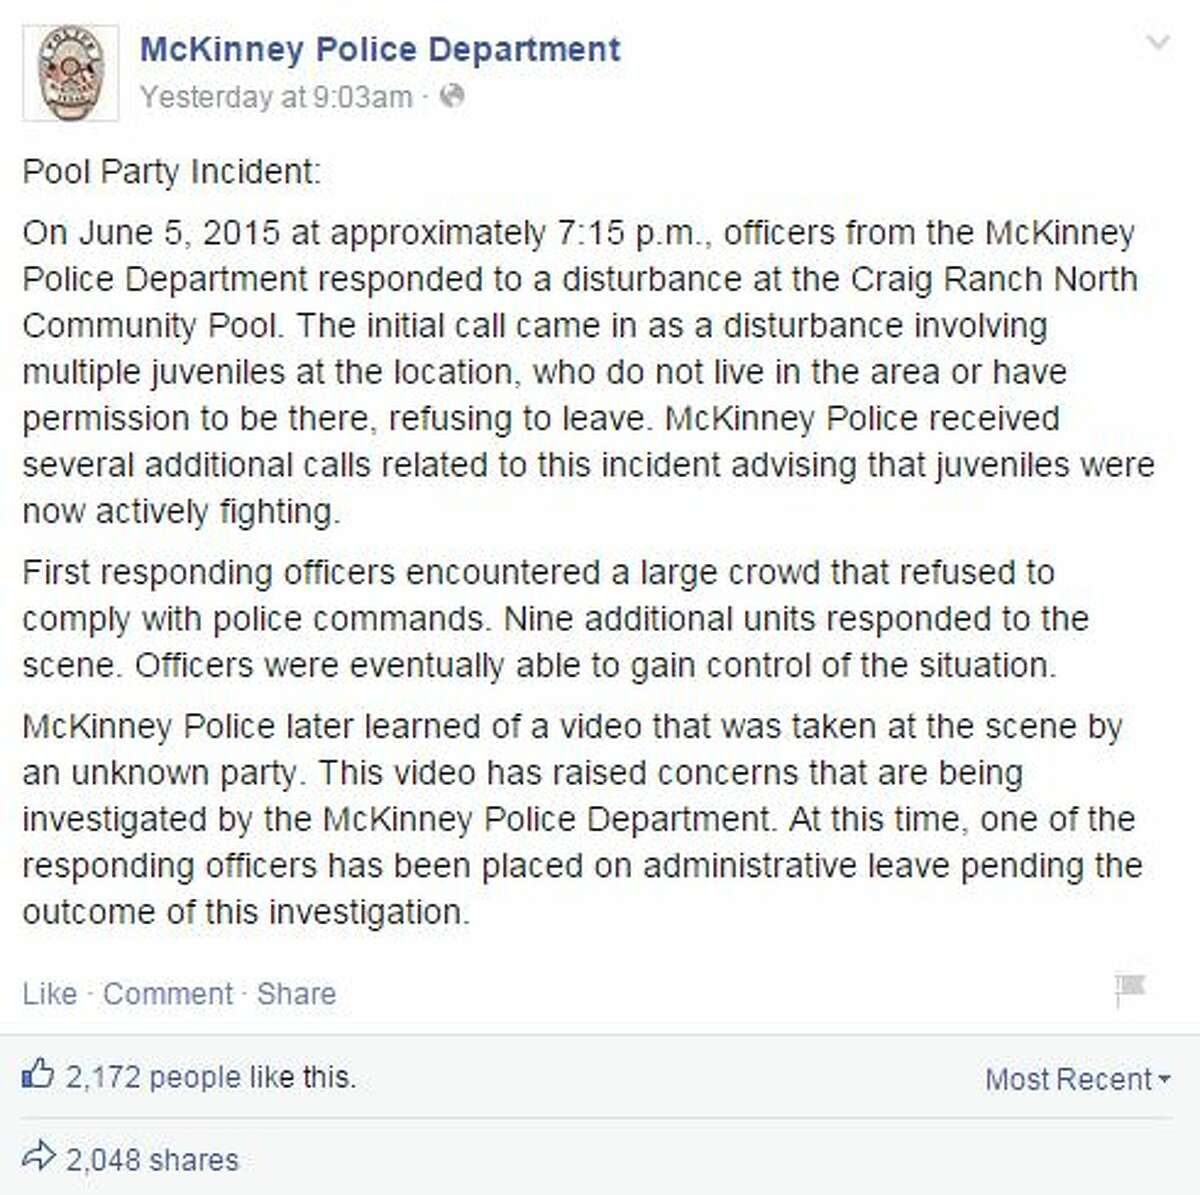 1. Why were police initially called? The McKinney Police Department released a statement saying